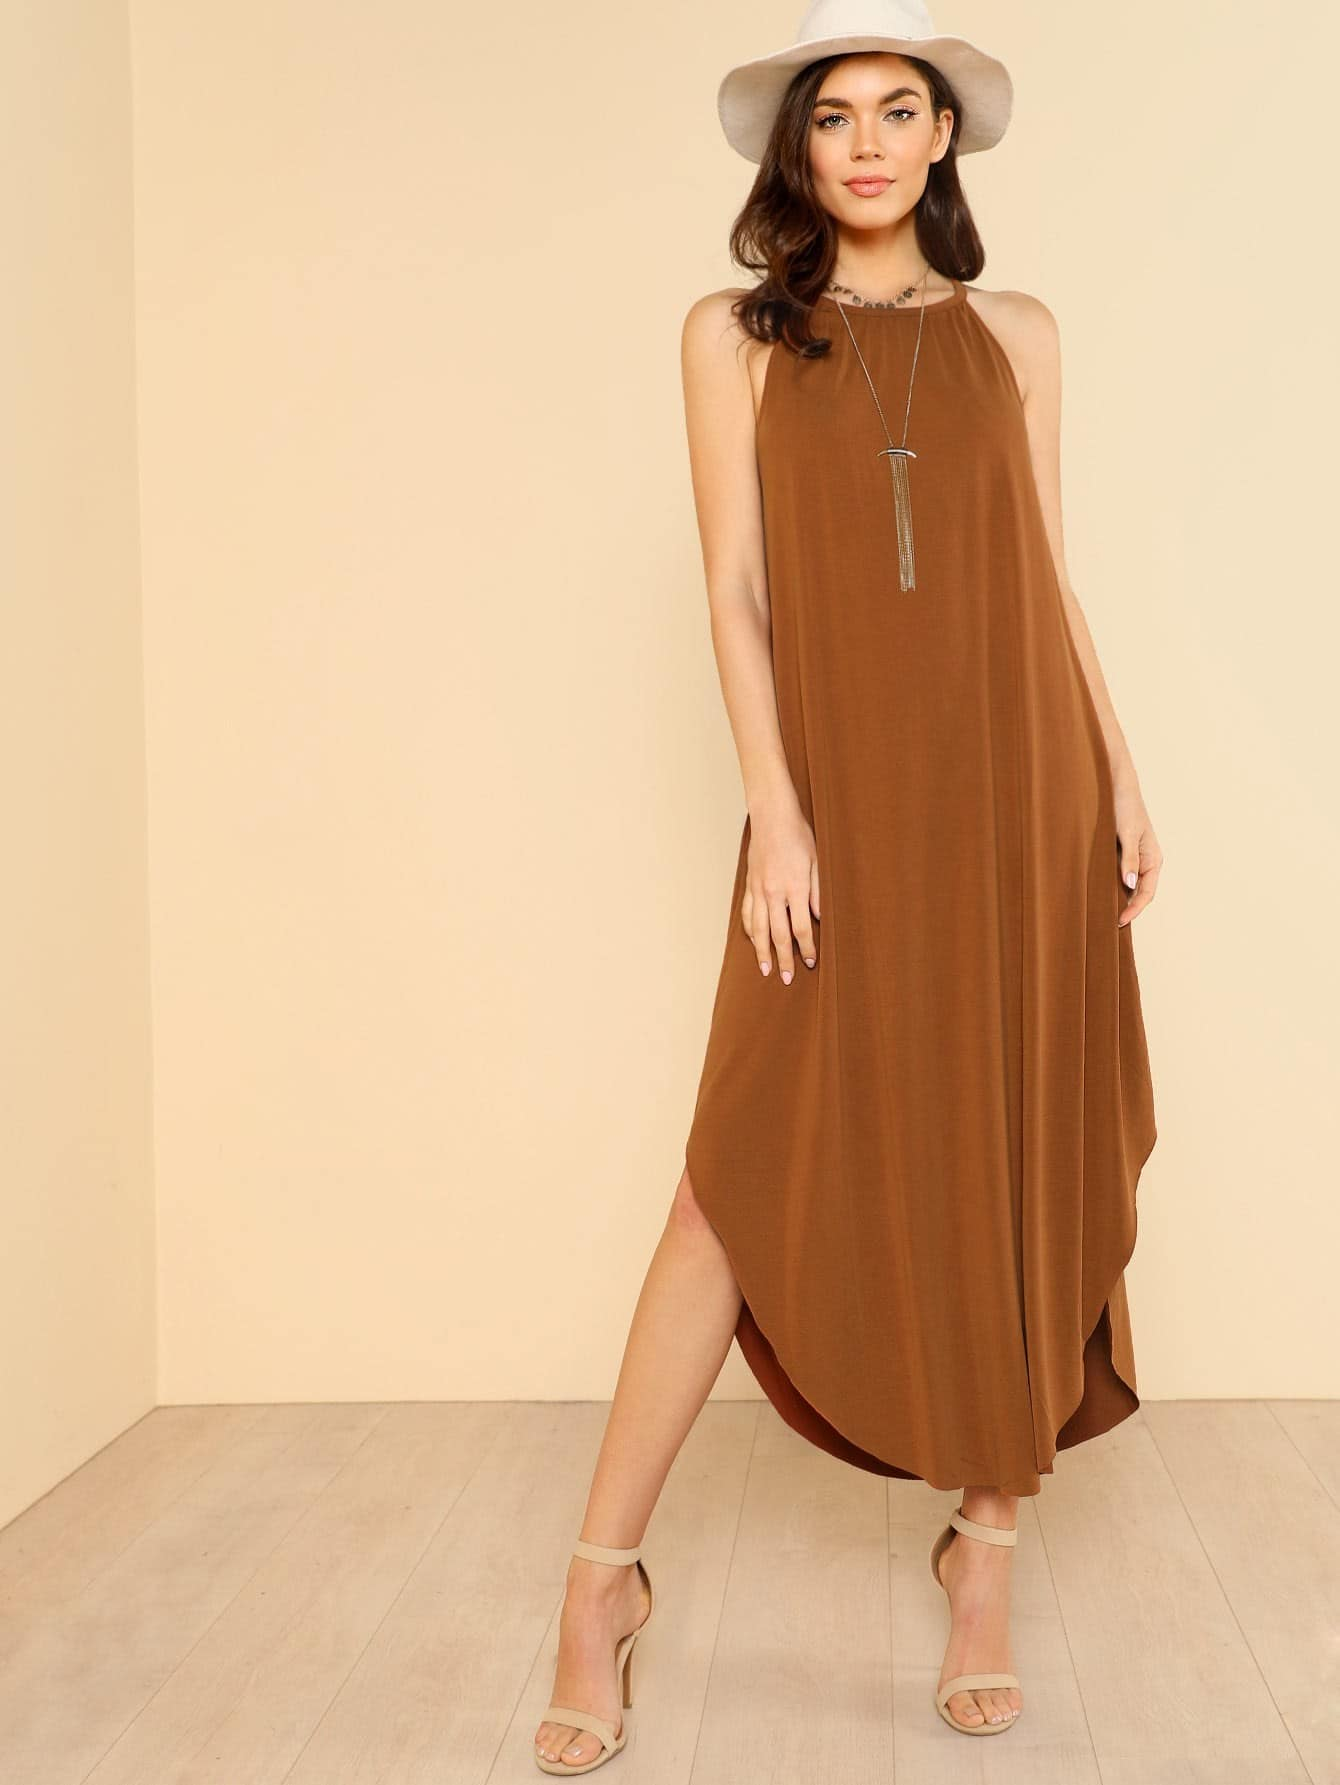 Keyhole Back Halter Curved Hem Dress batwing sleeve pocket side curved hem textured dress